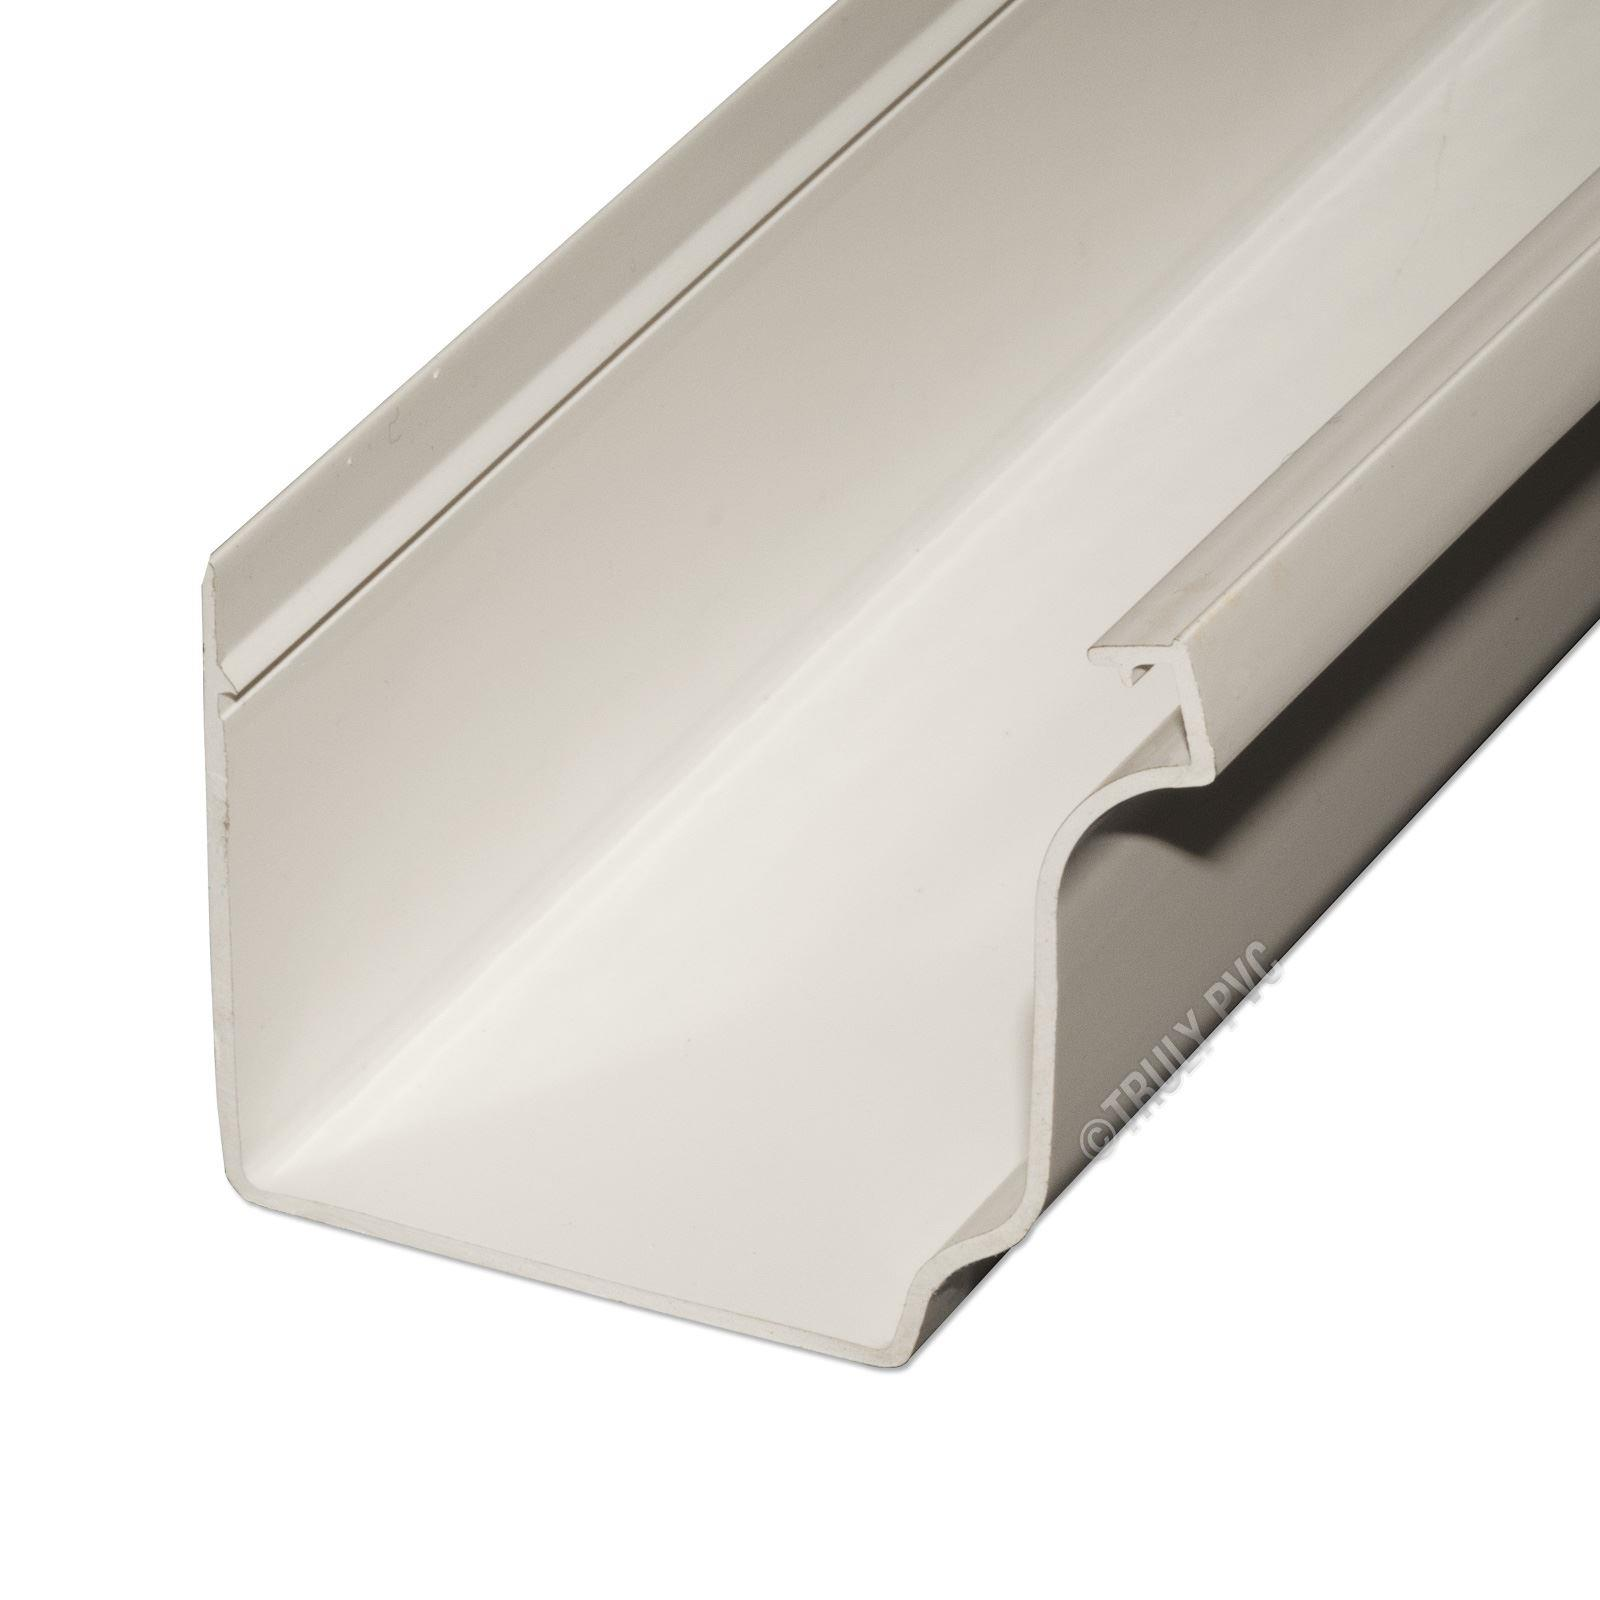 K2 Conservatory Roof Ogee Gutter 3m White Truly Pvc